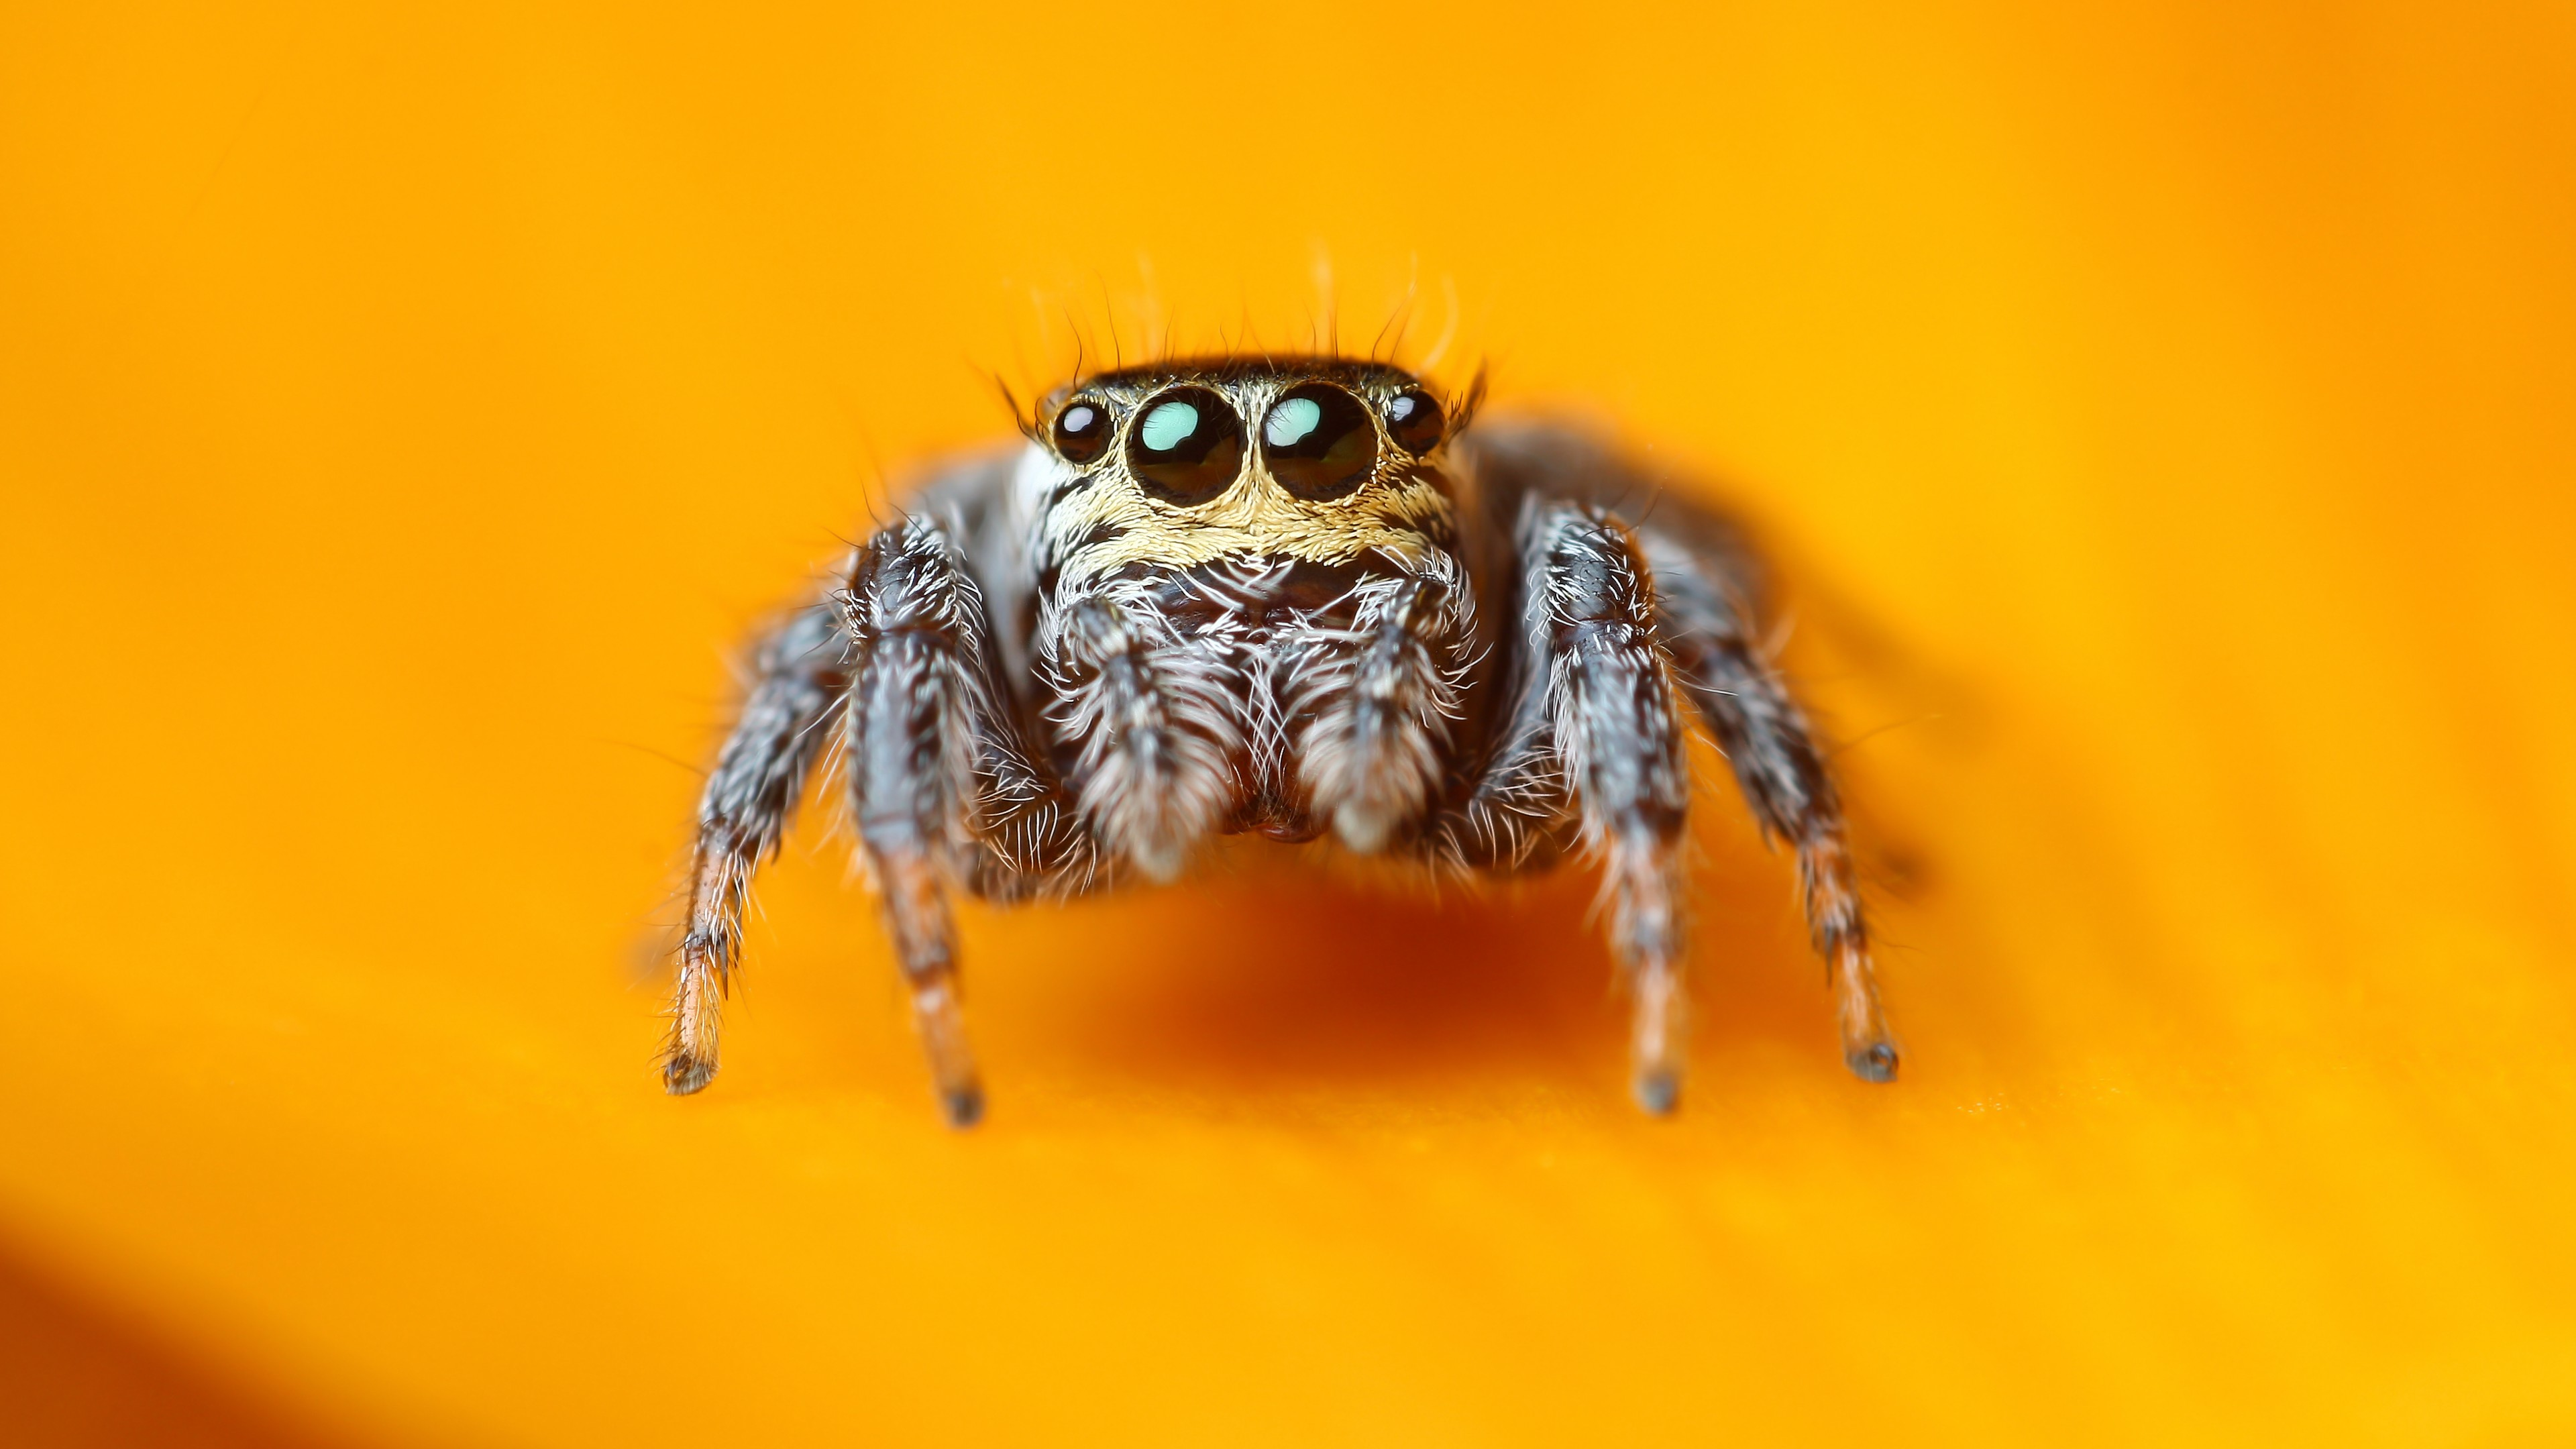 Blue Eyes Cute Wallpaper Wallpaper Jumping Spider 5k 4k Wallpaper Macro Black